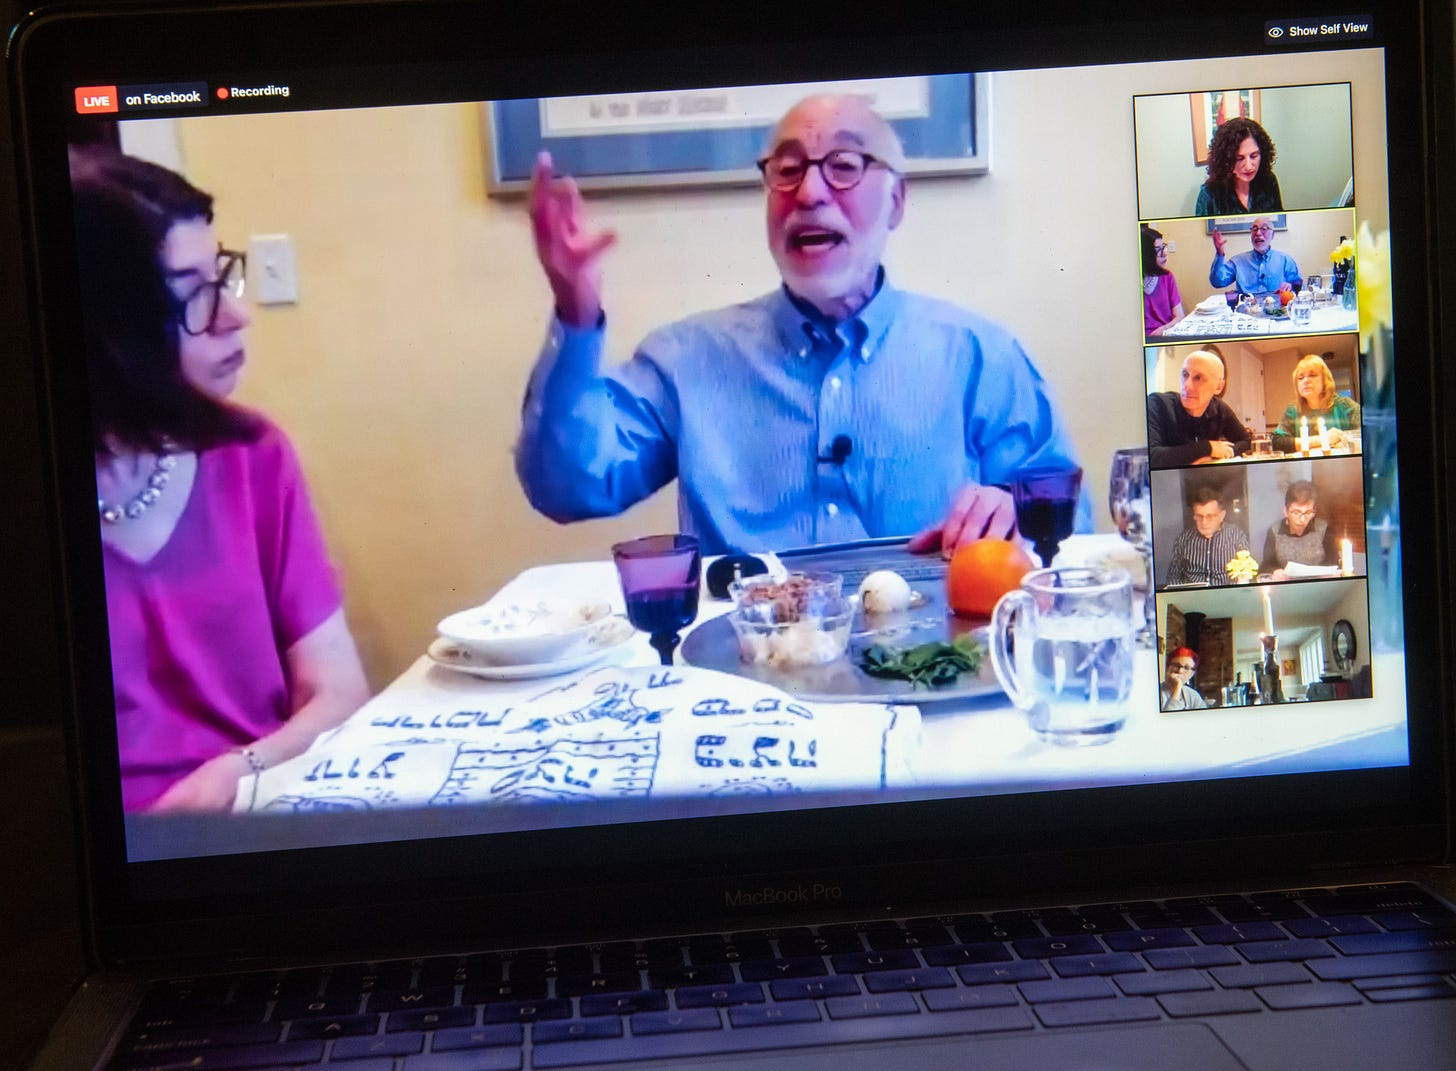 This image shows a man on a laptop screen during Seder